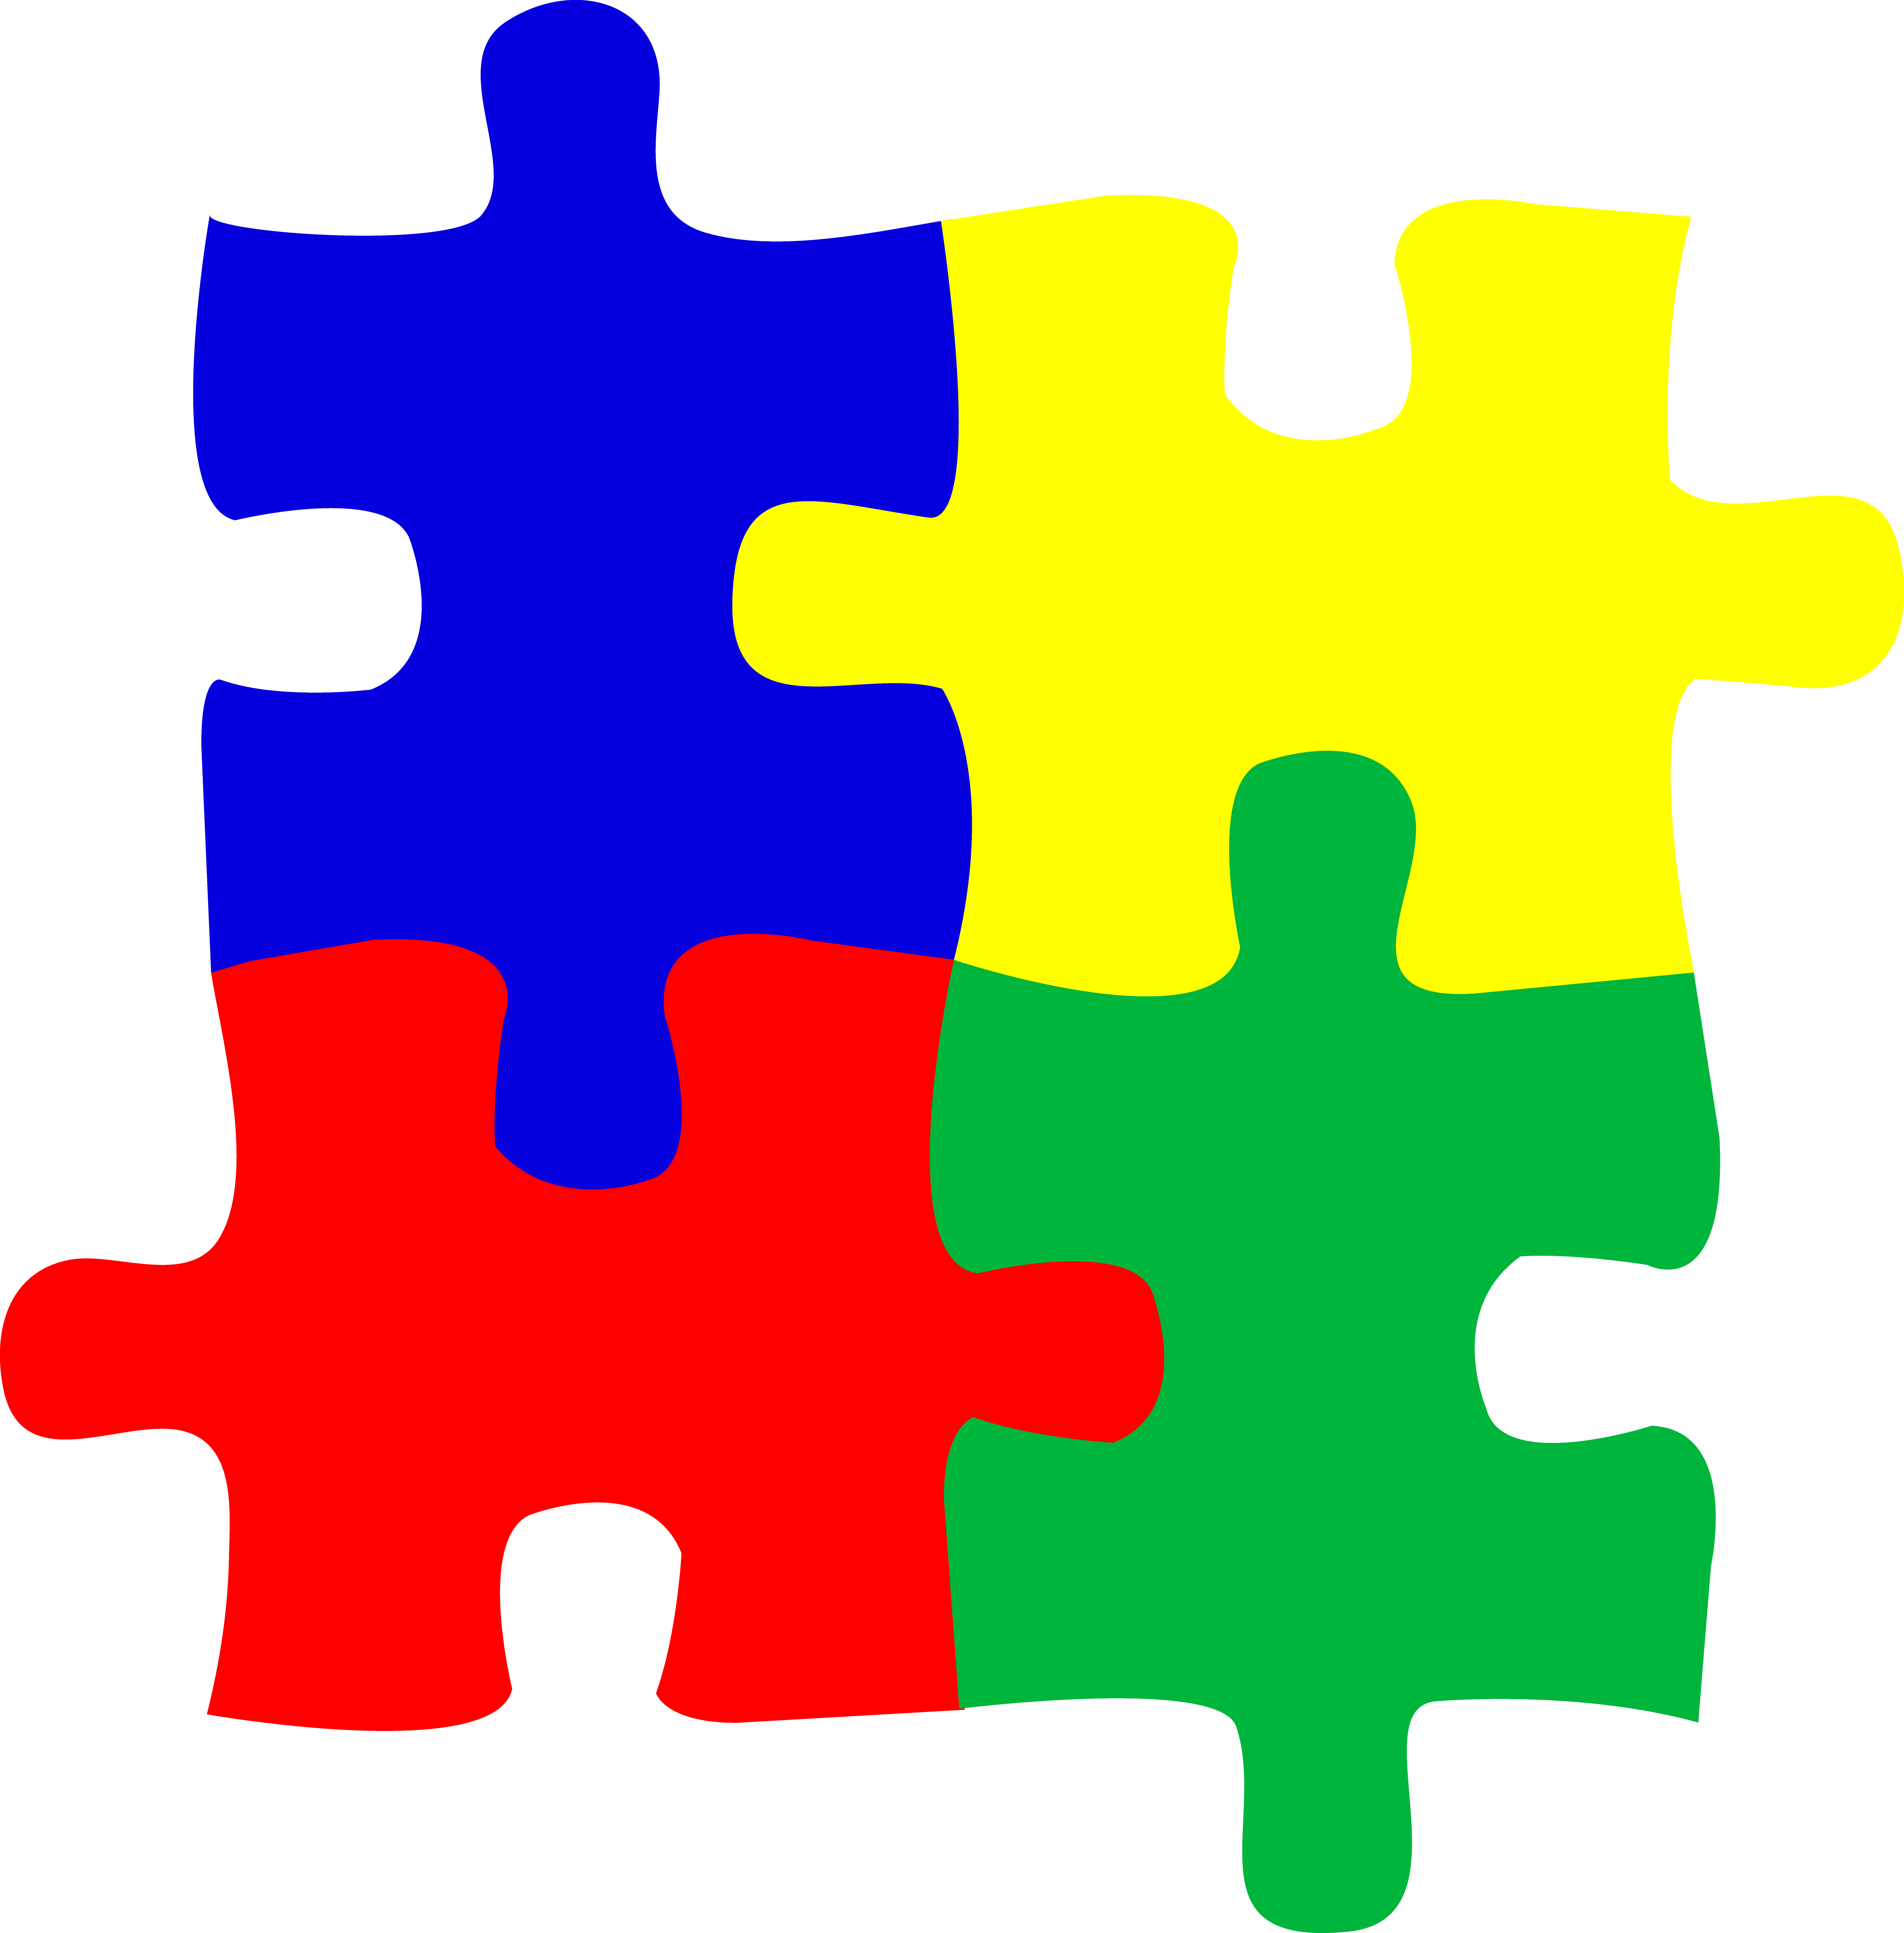 image library library Autism clipart autism symbol. Psych spring advertisements